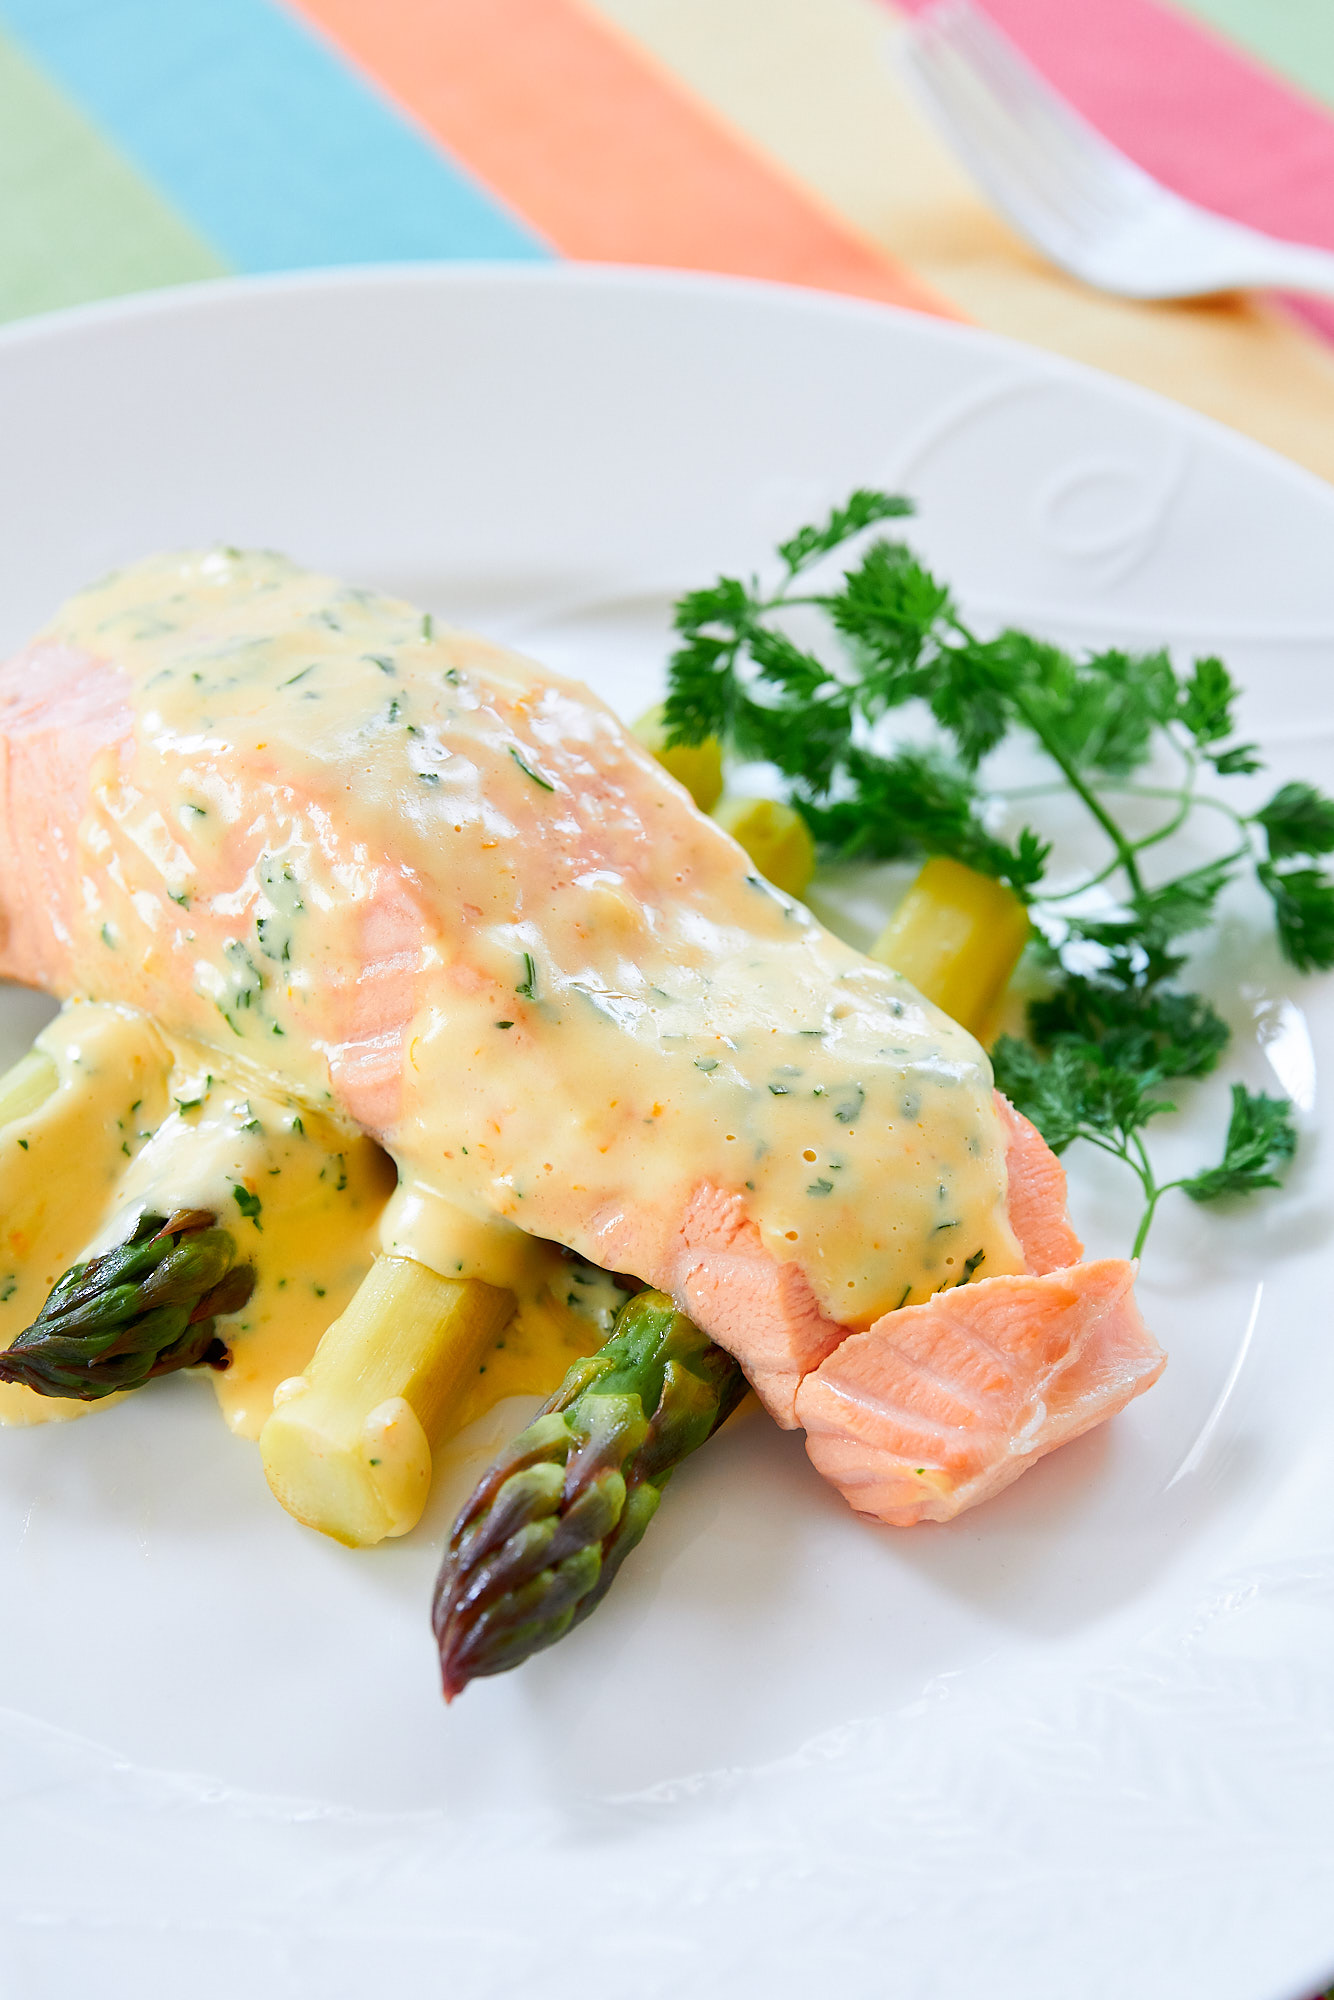 Poached Salmon with Chervil Hollandaise